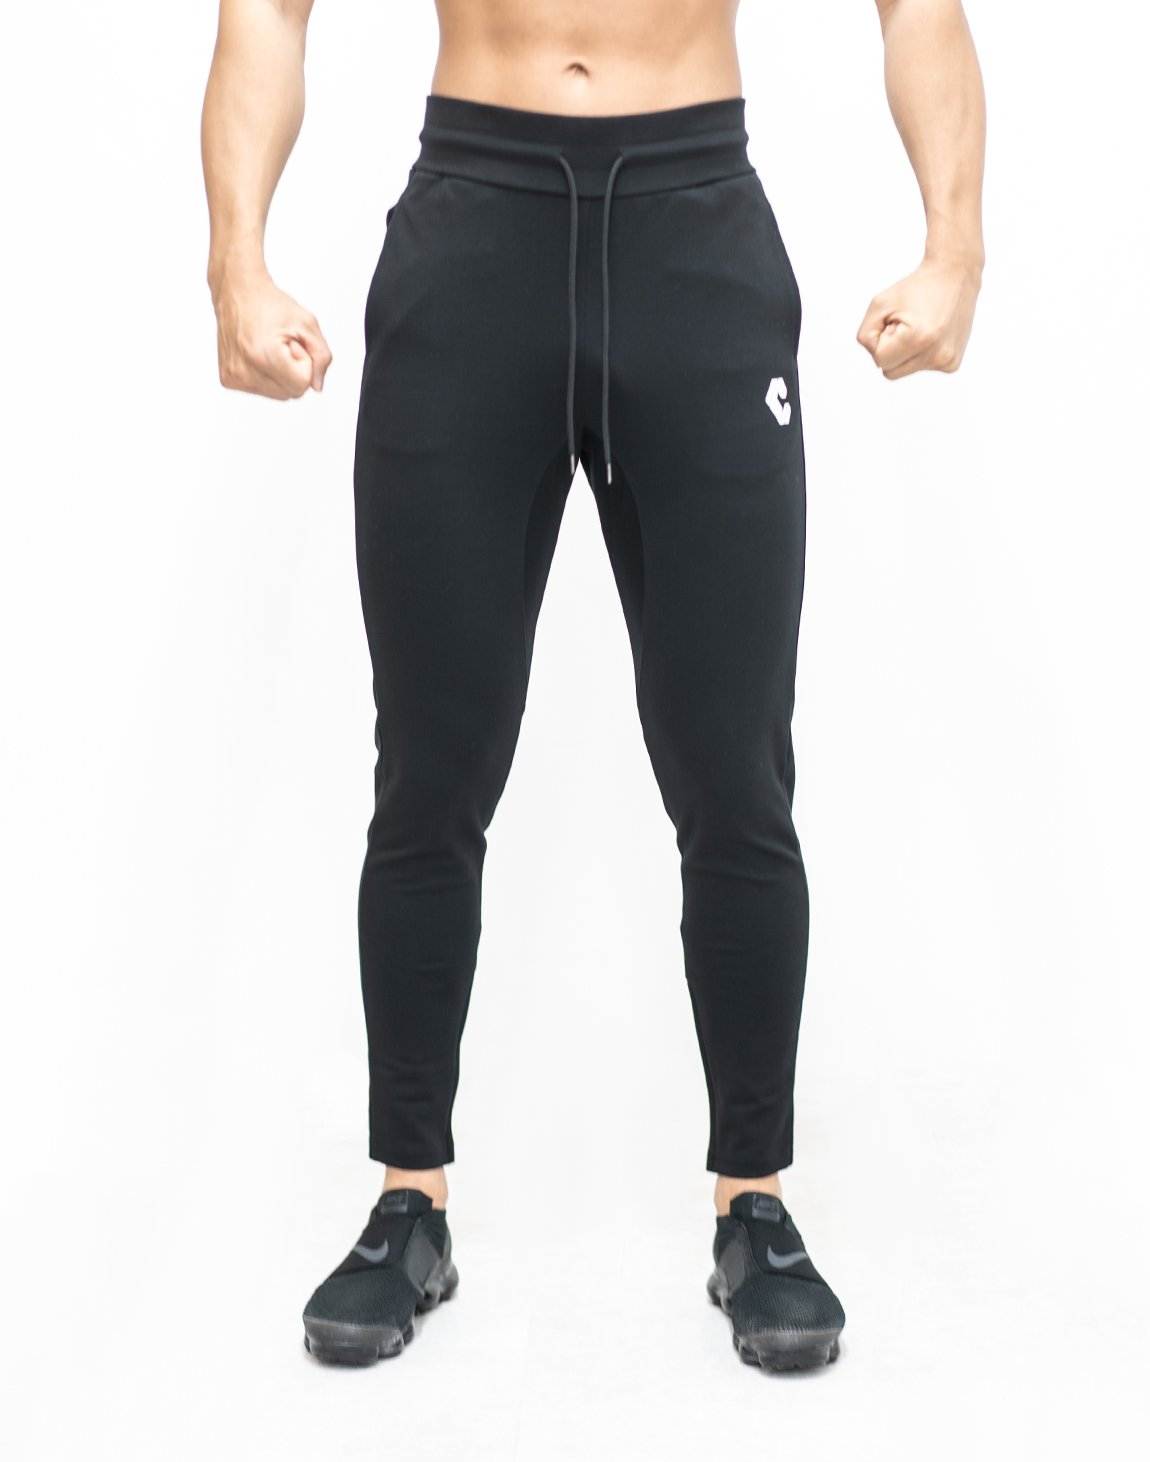 <img class='new_mark_img1' src='https://img.shop-pro.jp/img/new/icons1.gif' style='border:none;display:inline;margin:0px;padding:0px;width:auto;' />CRONOS MODE PANTS  【BLACK】